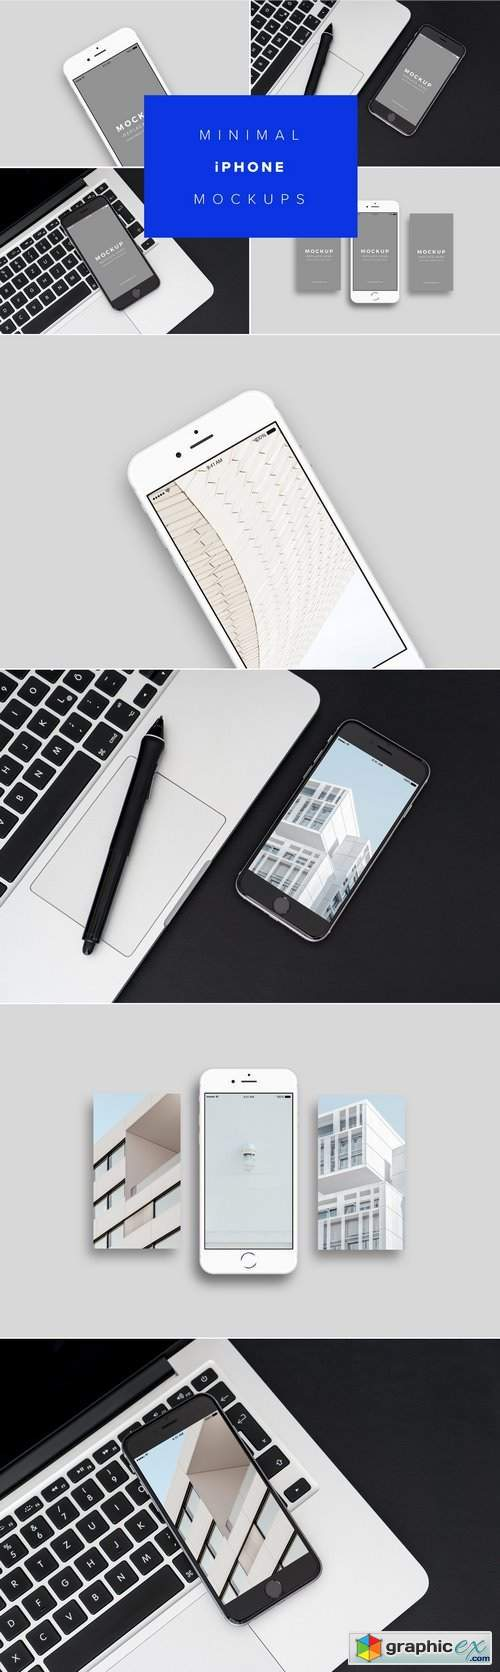 iPhone Mockups Minimal Version